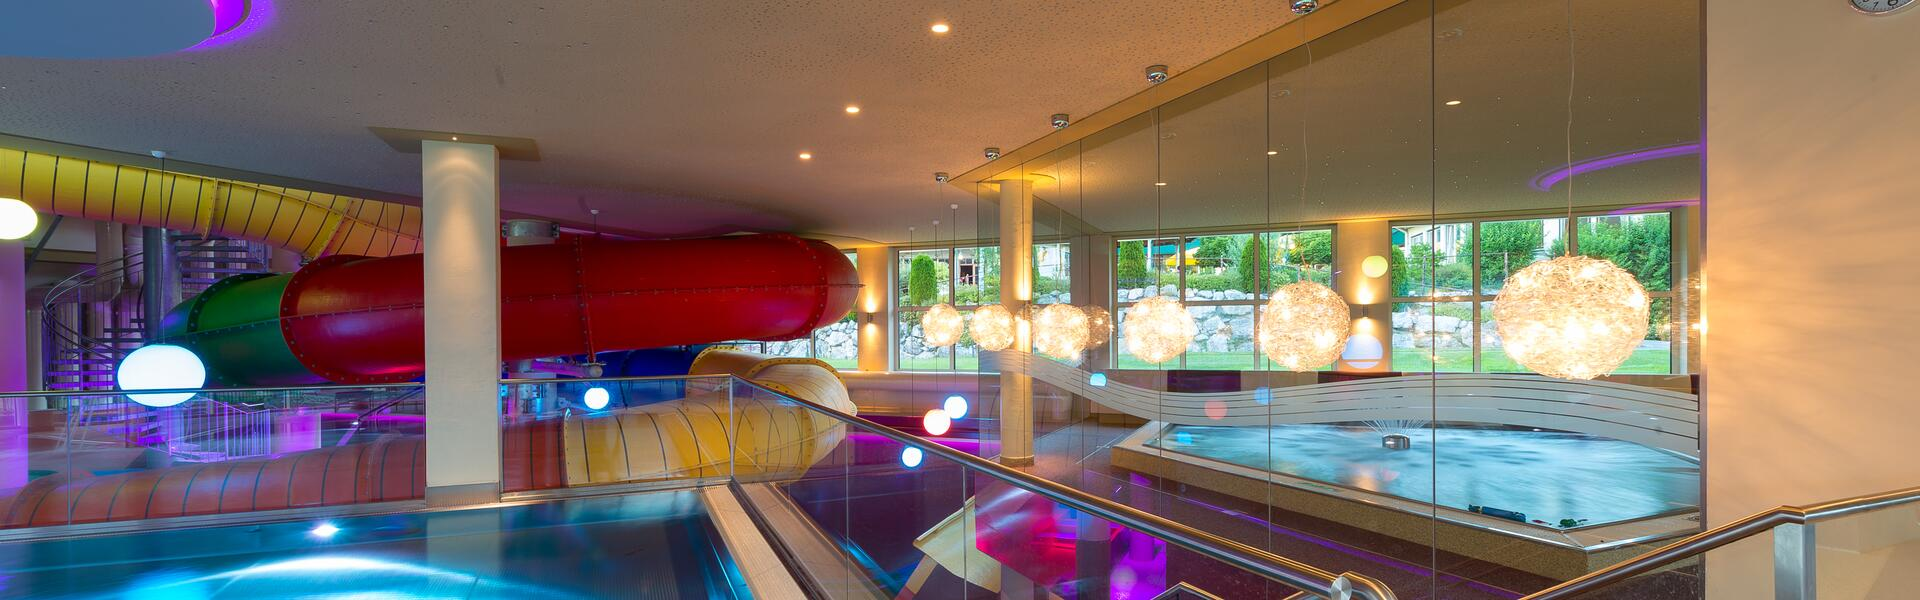 hotel with water slide tyrol